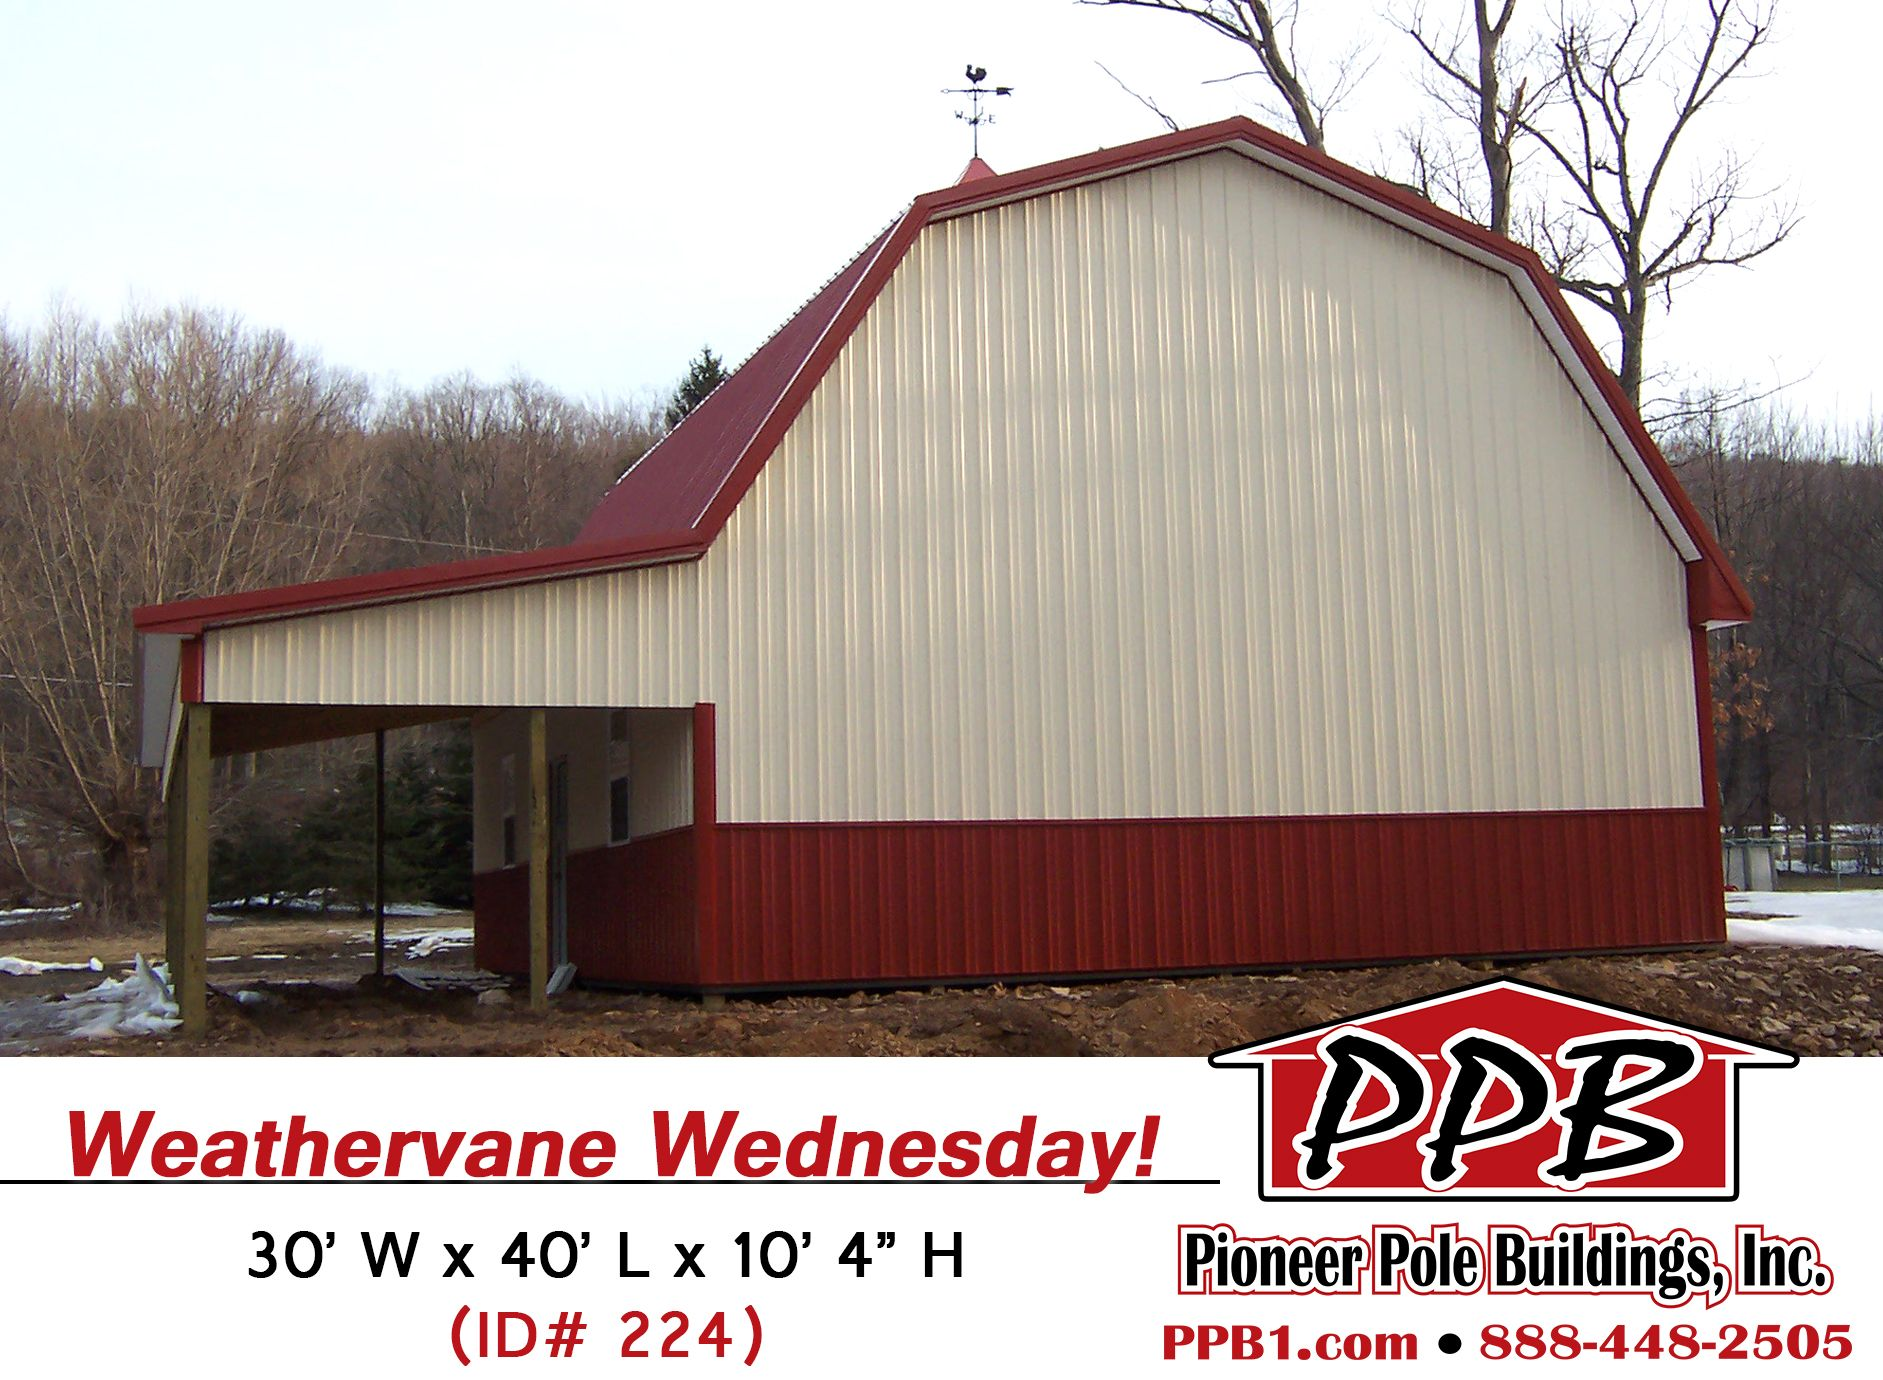 Check out this rooster weathervane wednesday 1 48 for Pole barn dimensions